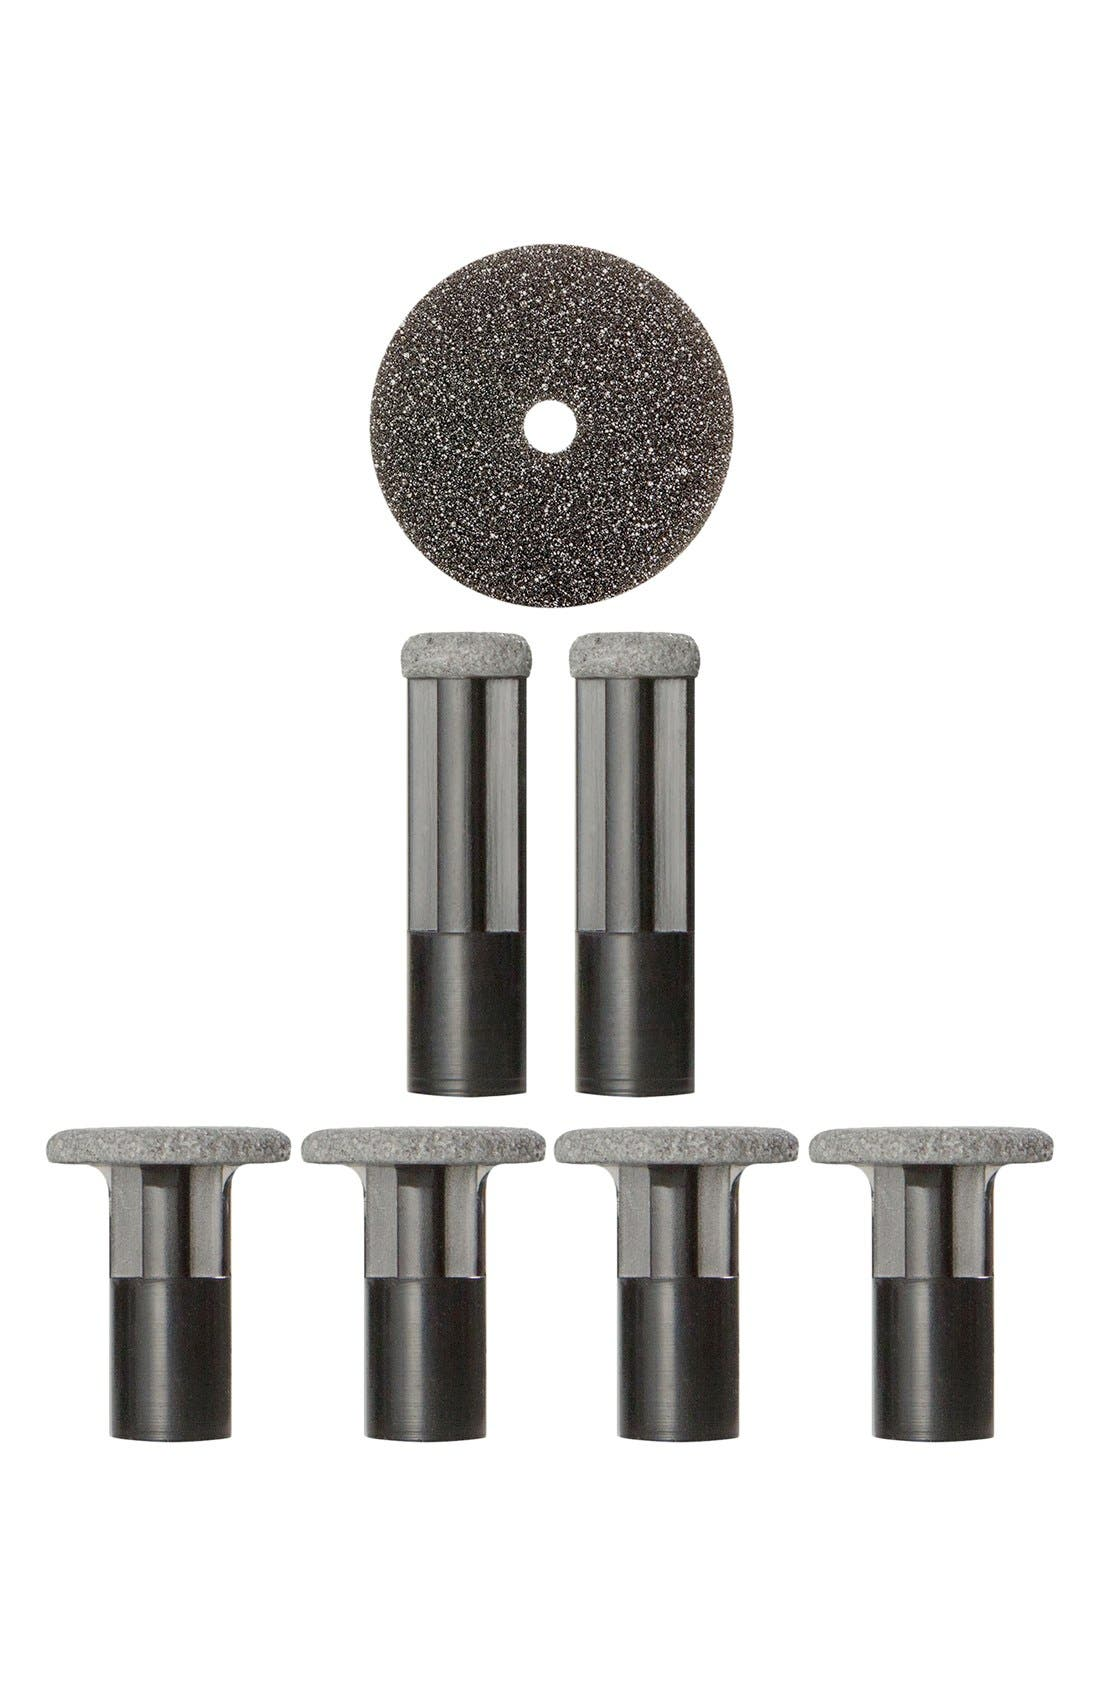 Black Body & Feet Replacement Discs,                         Main,                         color, 000